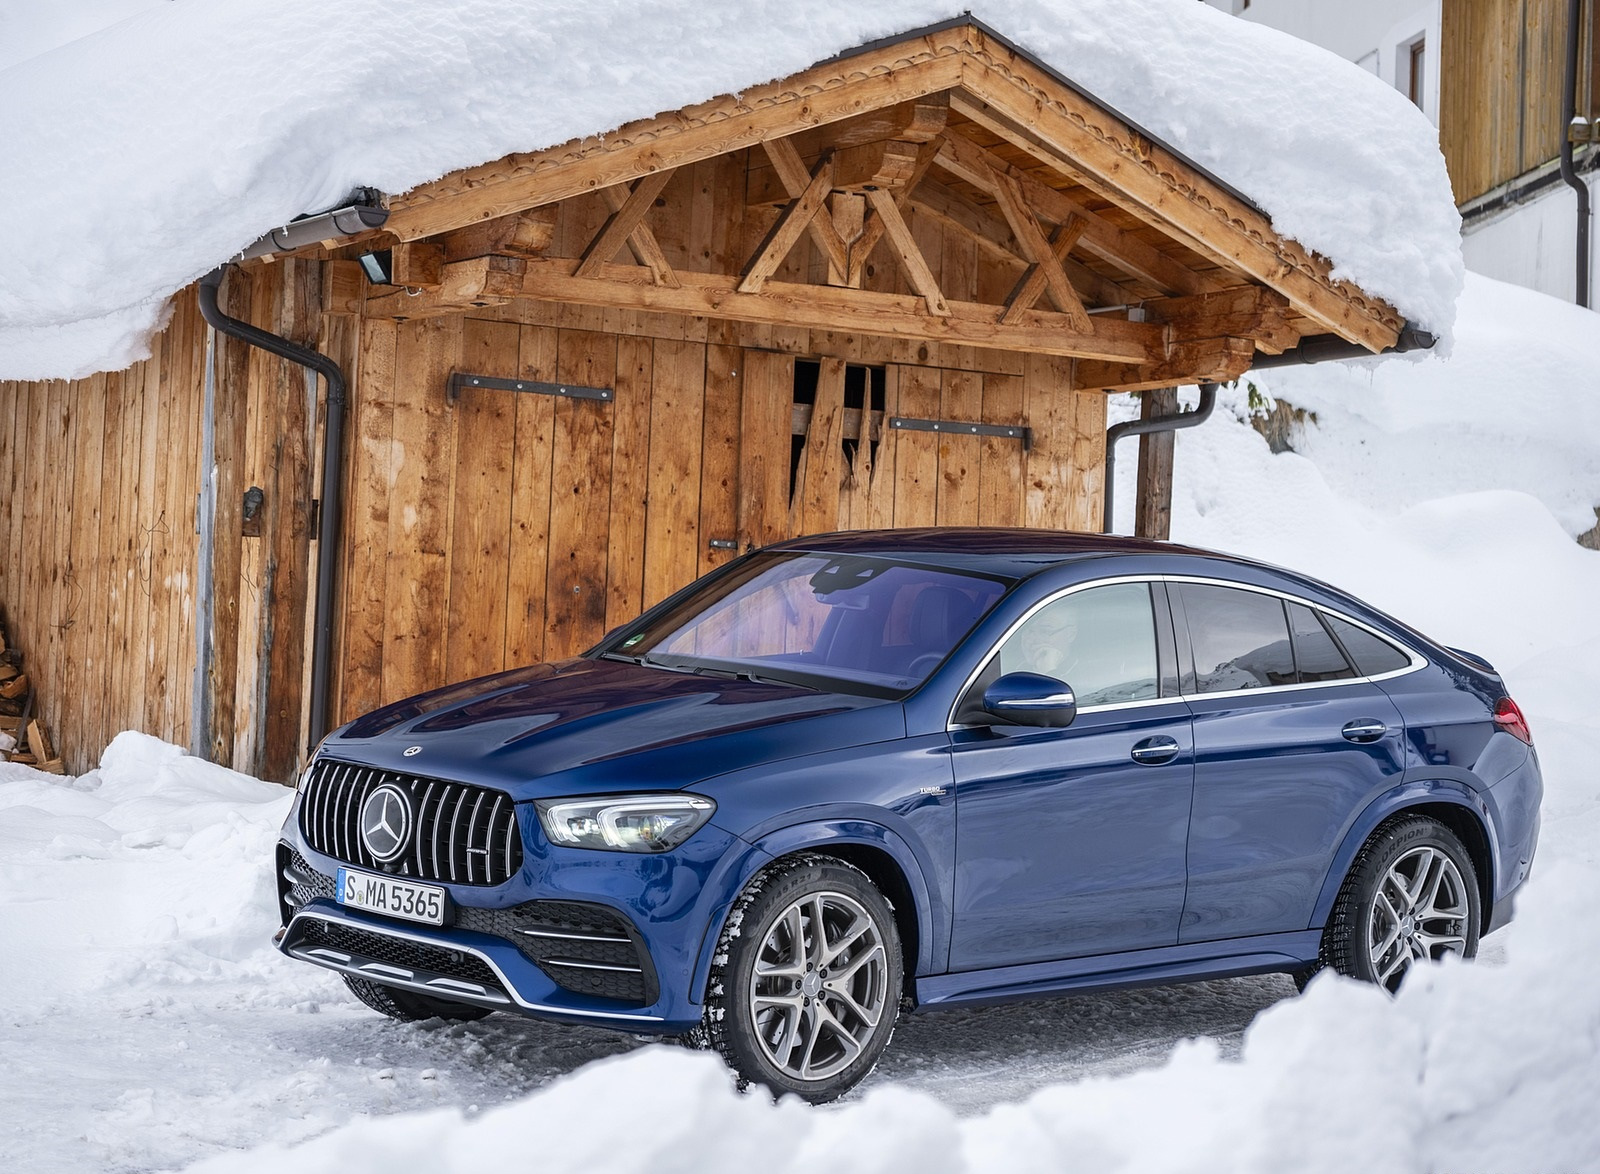 2021 Mercedes-AMG GLE 53 4MATIC Coupe (Color: Brilliant Blue Metallic) Front Three-Quarter Wallpapers (5)